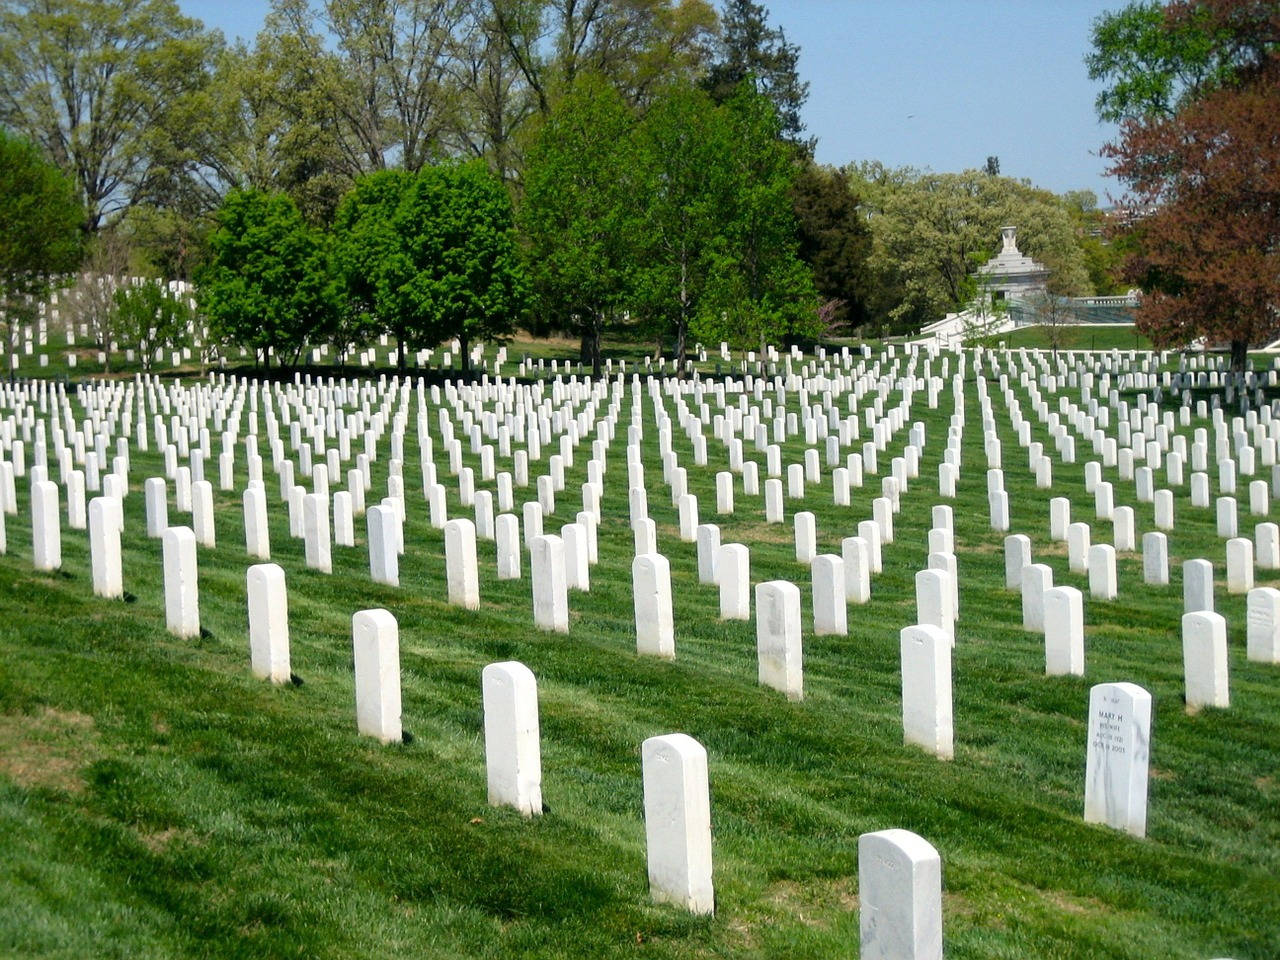 arlington-national-cemetery-354846_1280